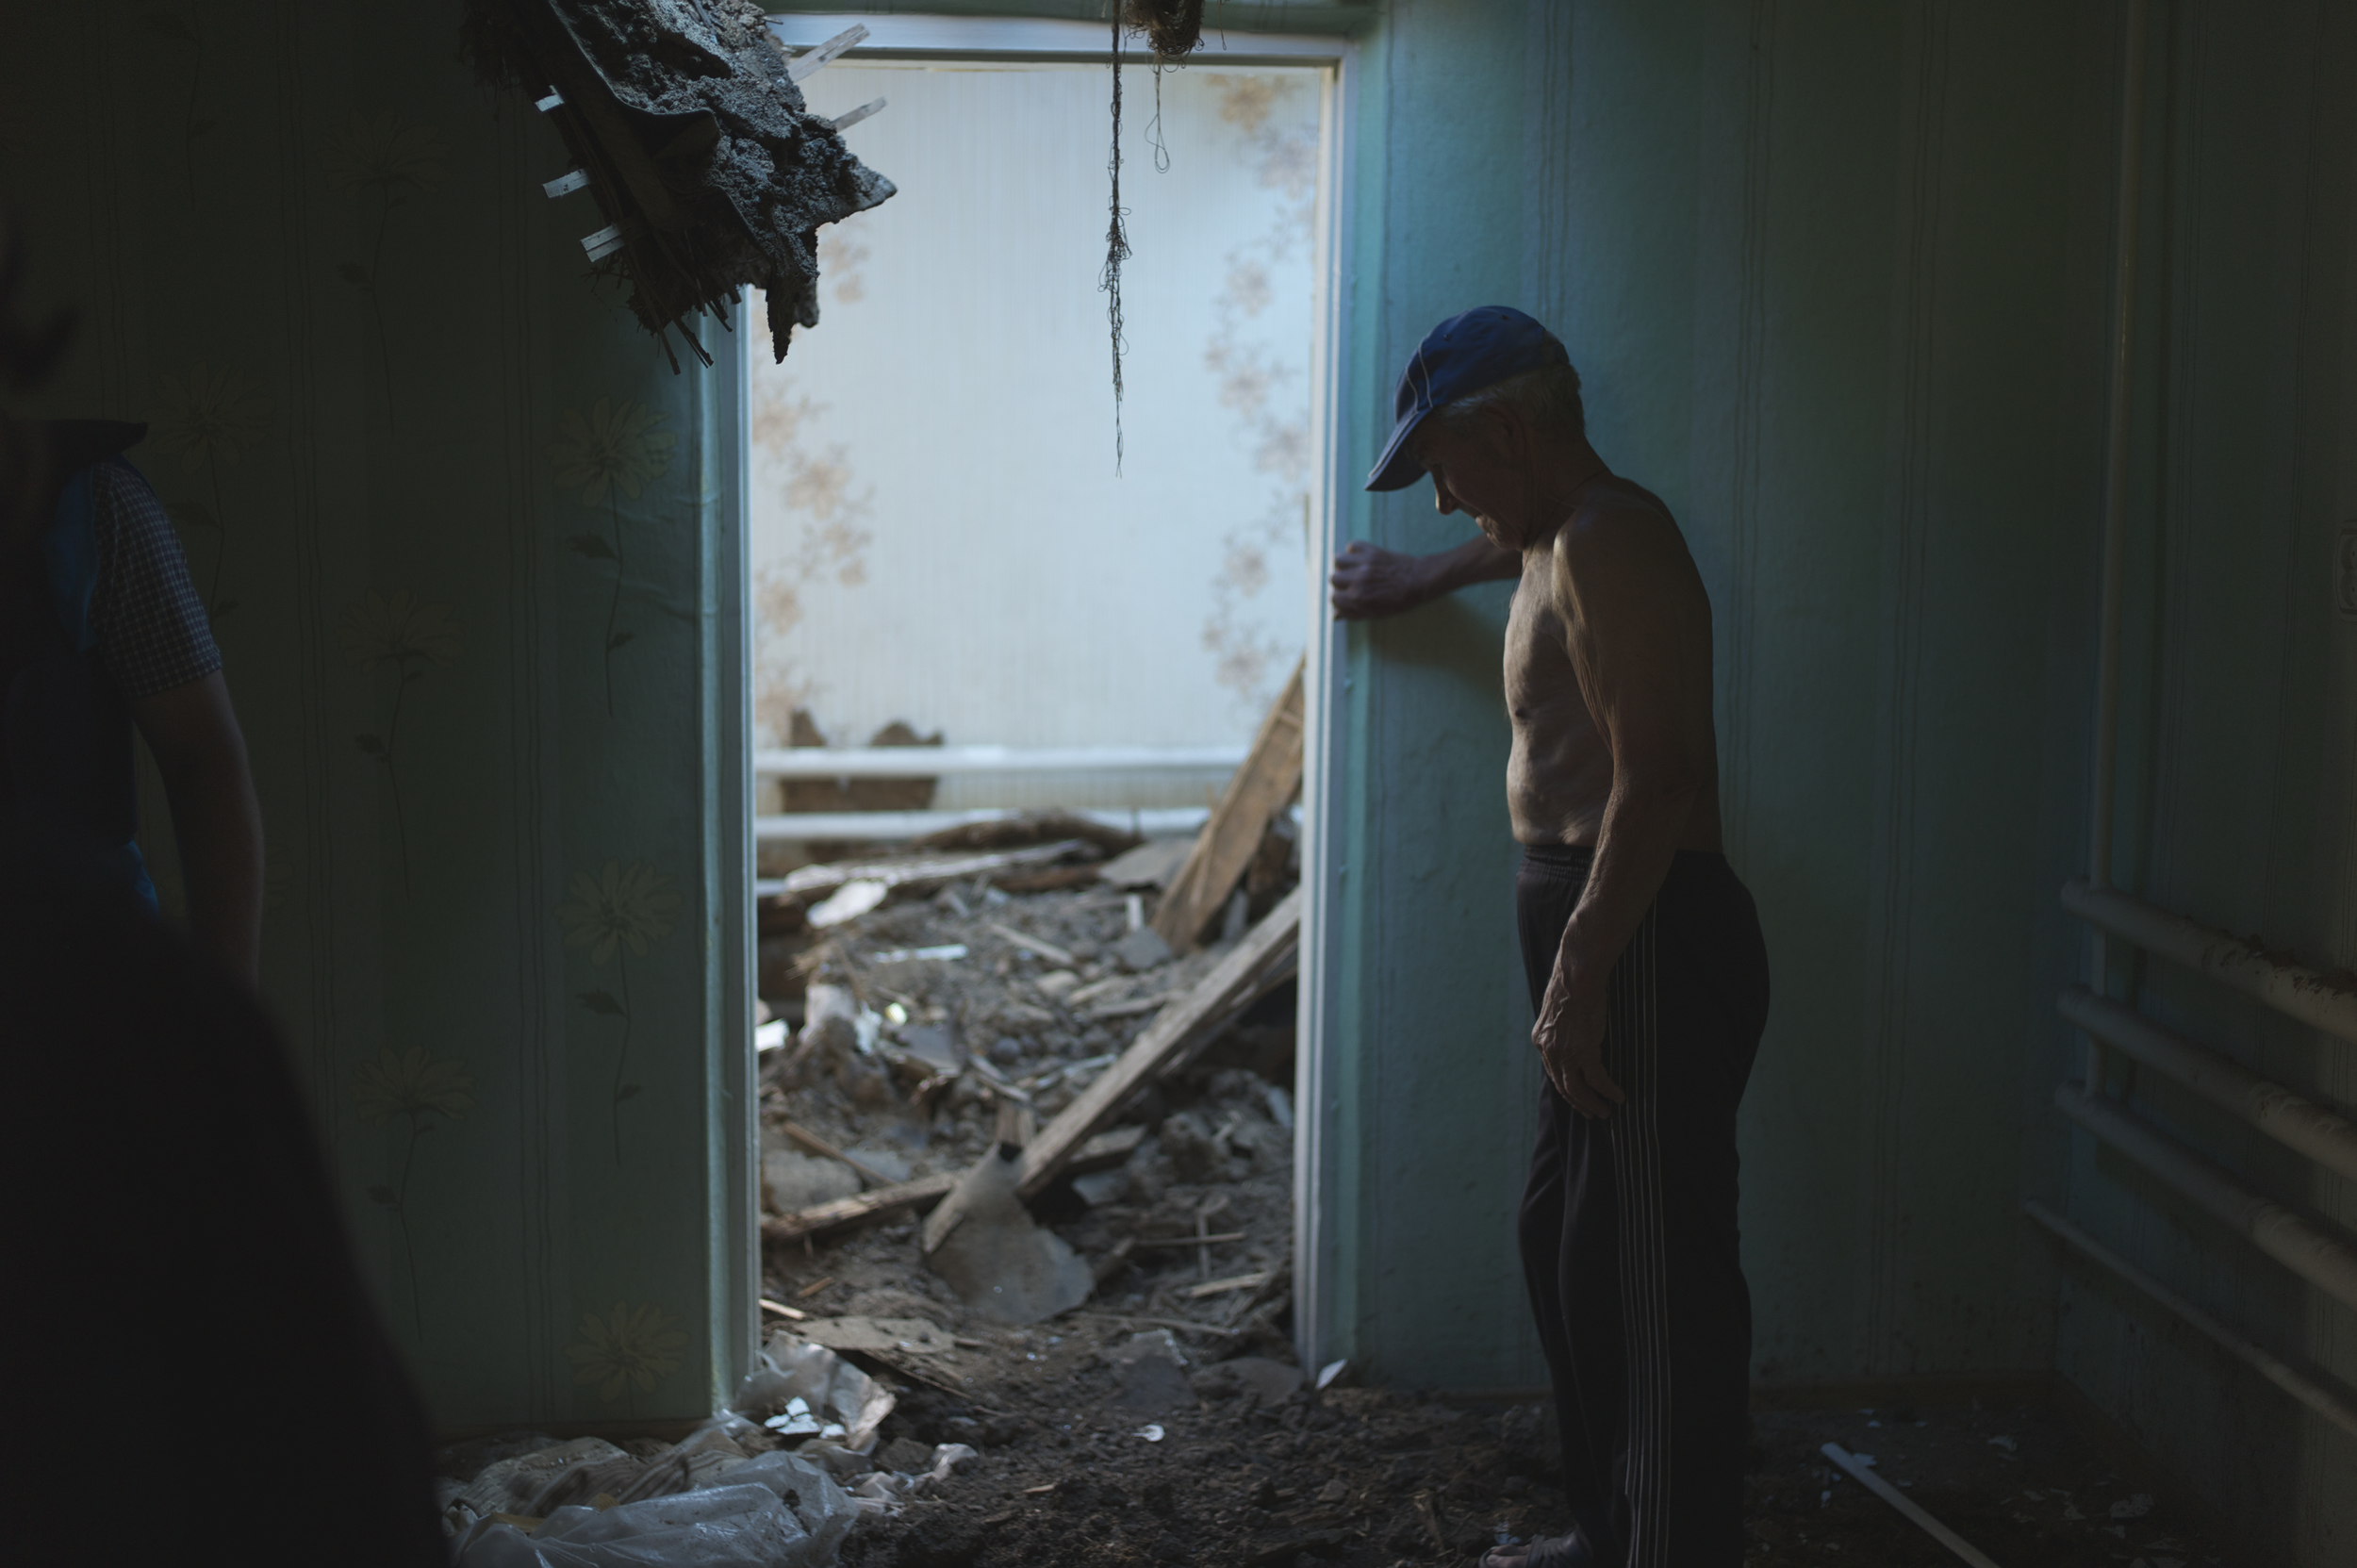 A man assesses the damage to his home by shelling from rebel forces in the NGCA. Most IDPs have found immediate housing with friends or relatives, but there are increasing needs for longer-term housing solutions for the displaced. Photo: Patrick Breslin